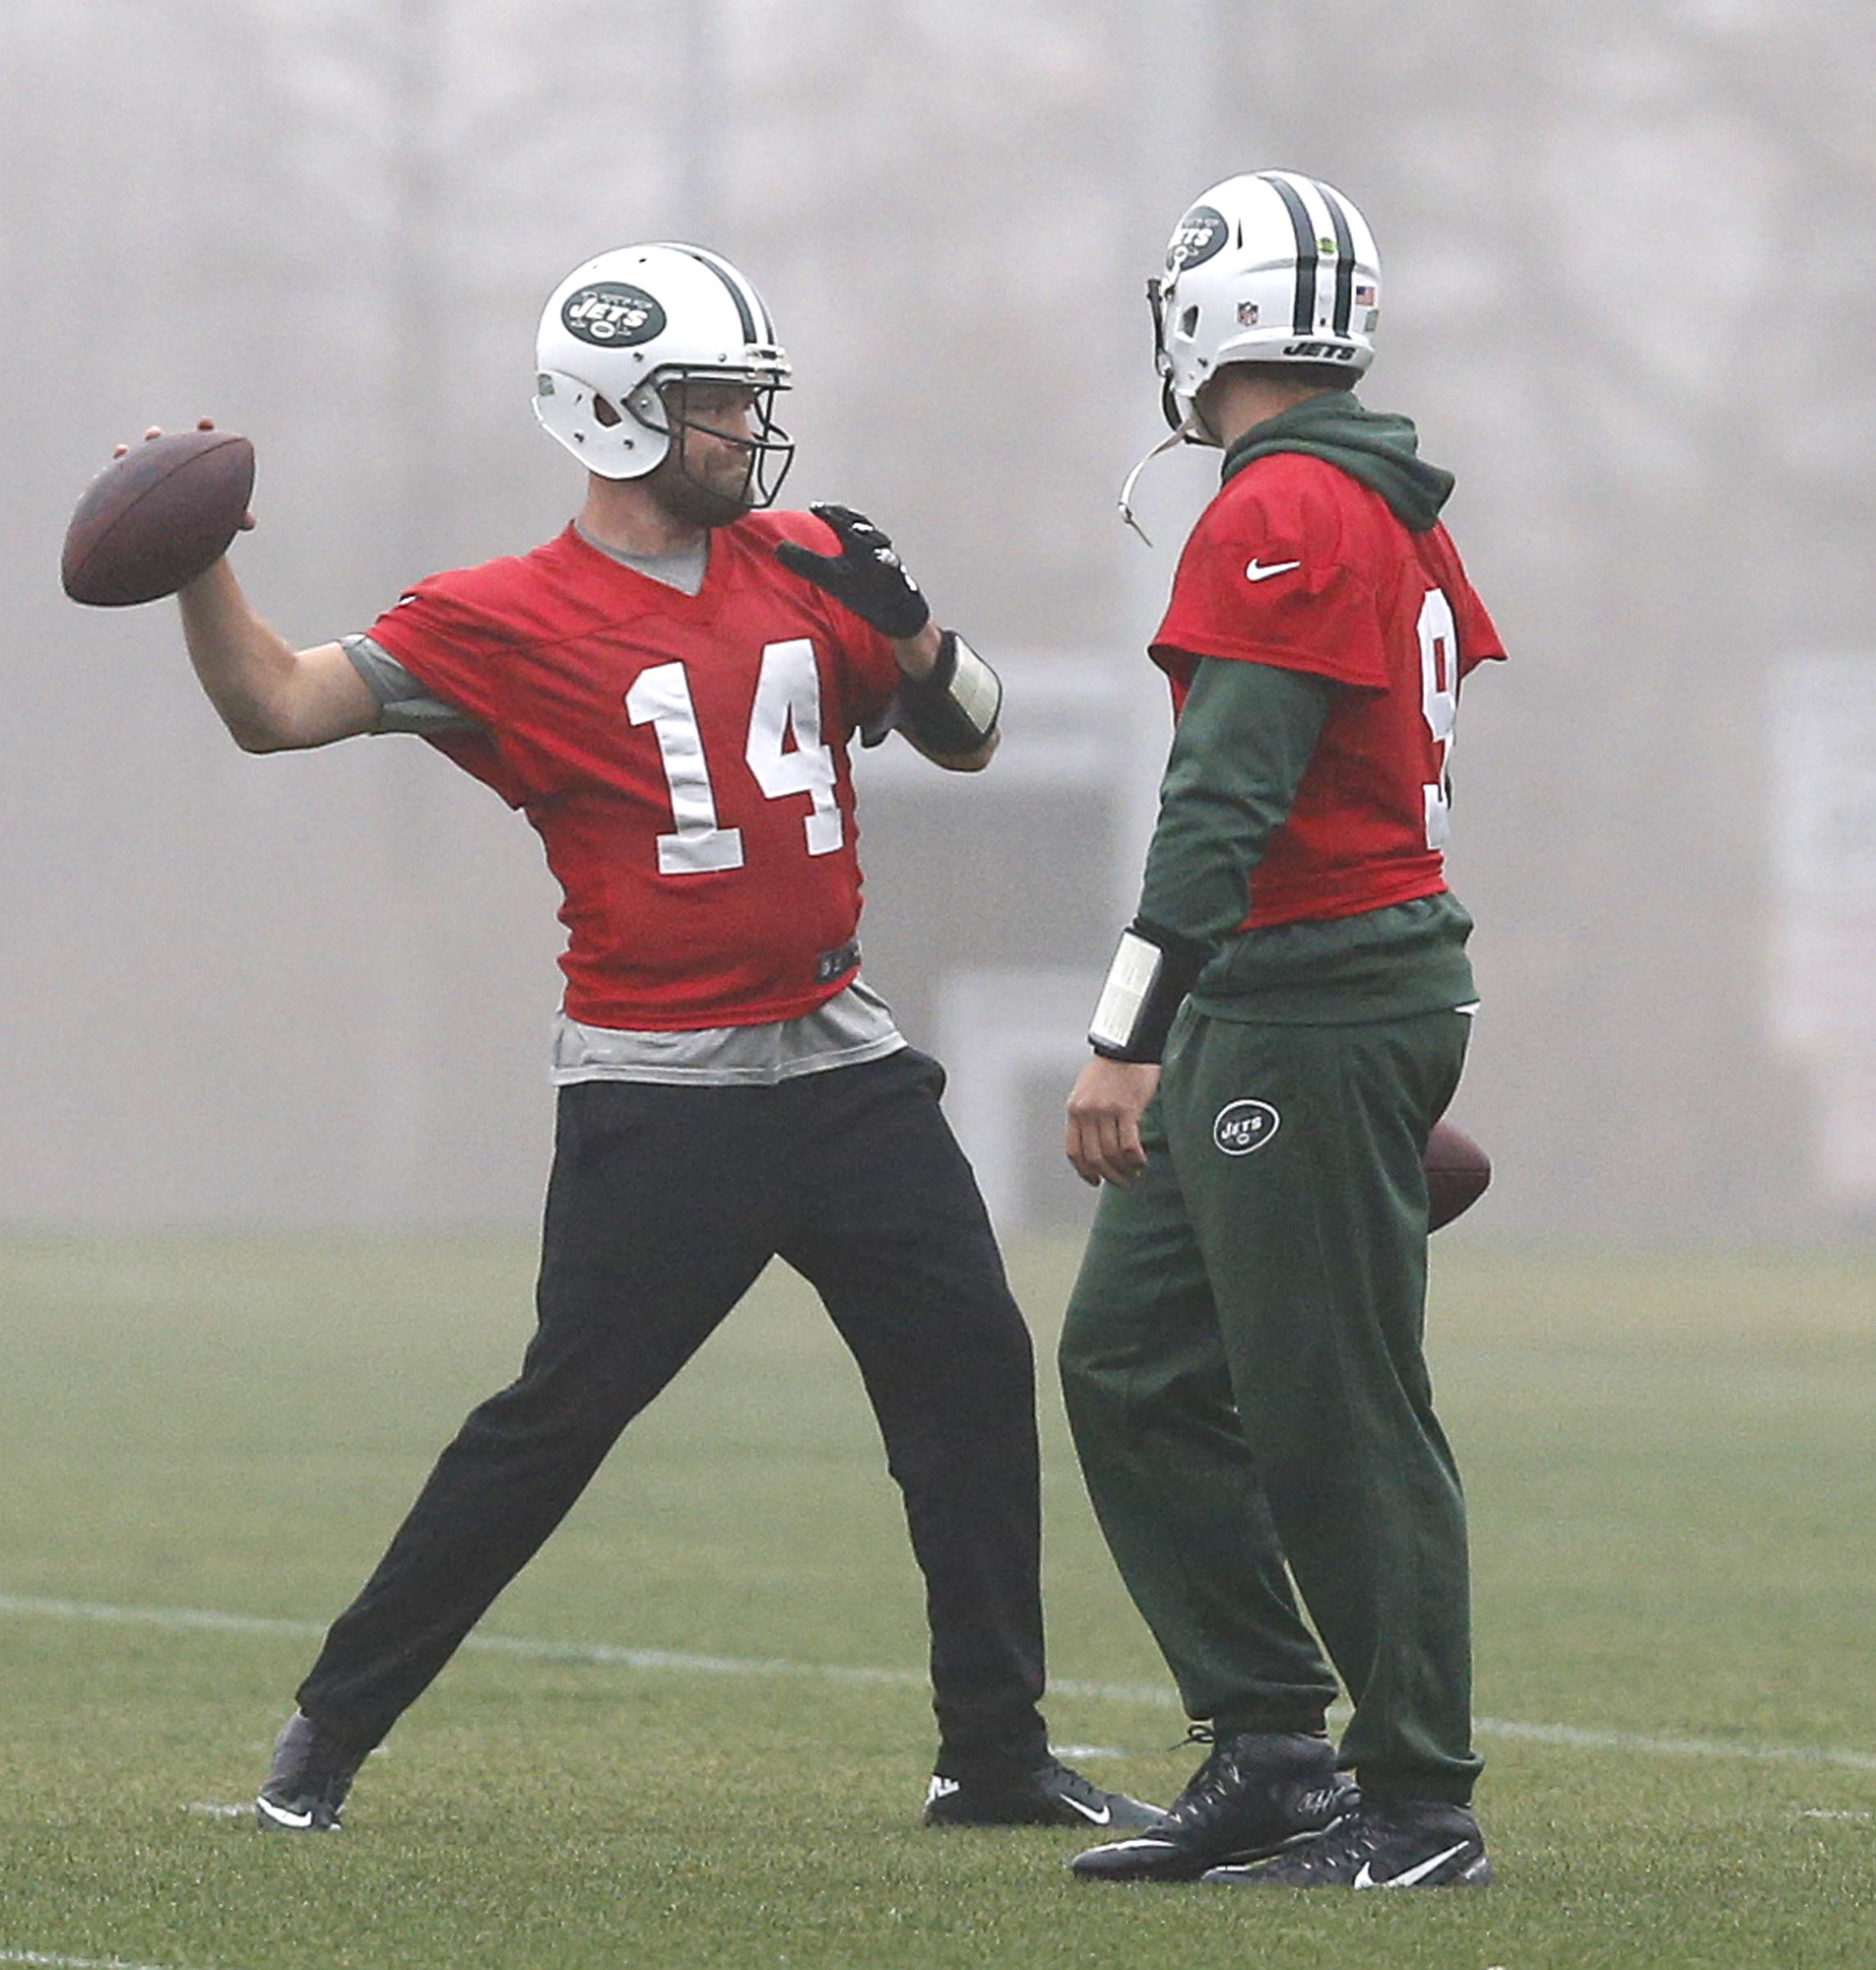 New York Jets quarterback Ryan Fitzpatrick (14) throws a pass during a workout as quarterback Bryce Petty (9) watches during NFL football practice, Wednesday, Dec. 30, 2015, in Florham Park, N.J.  The Jets are preparing for Sunday's game against the Buffa